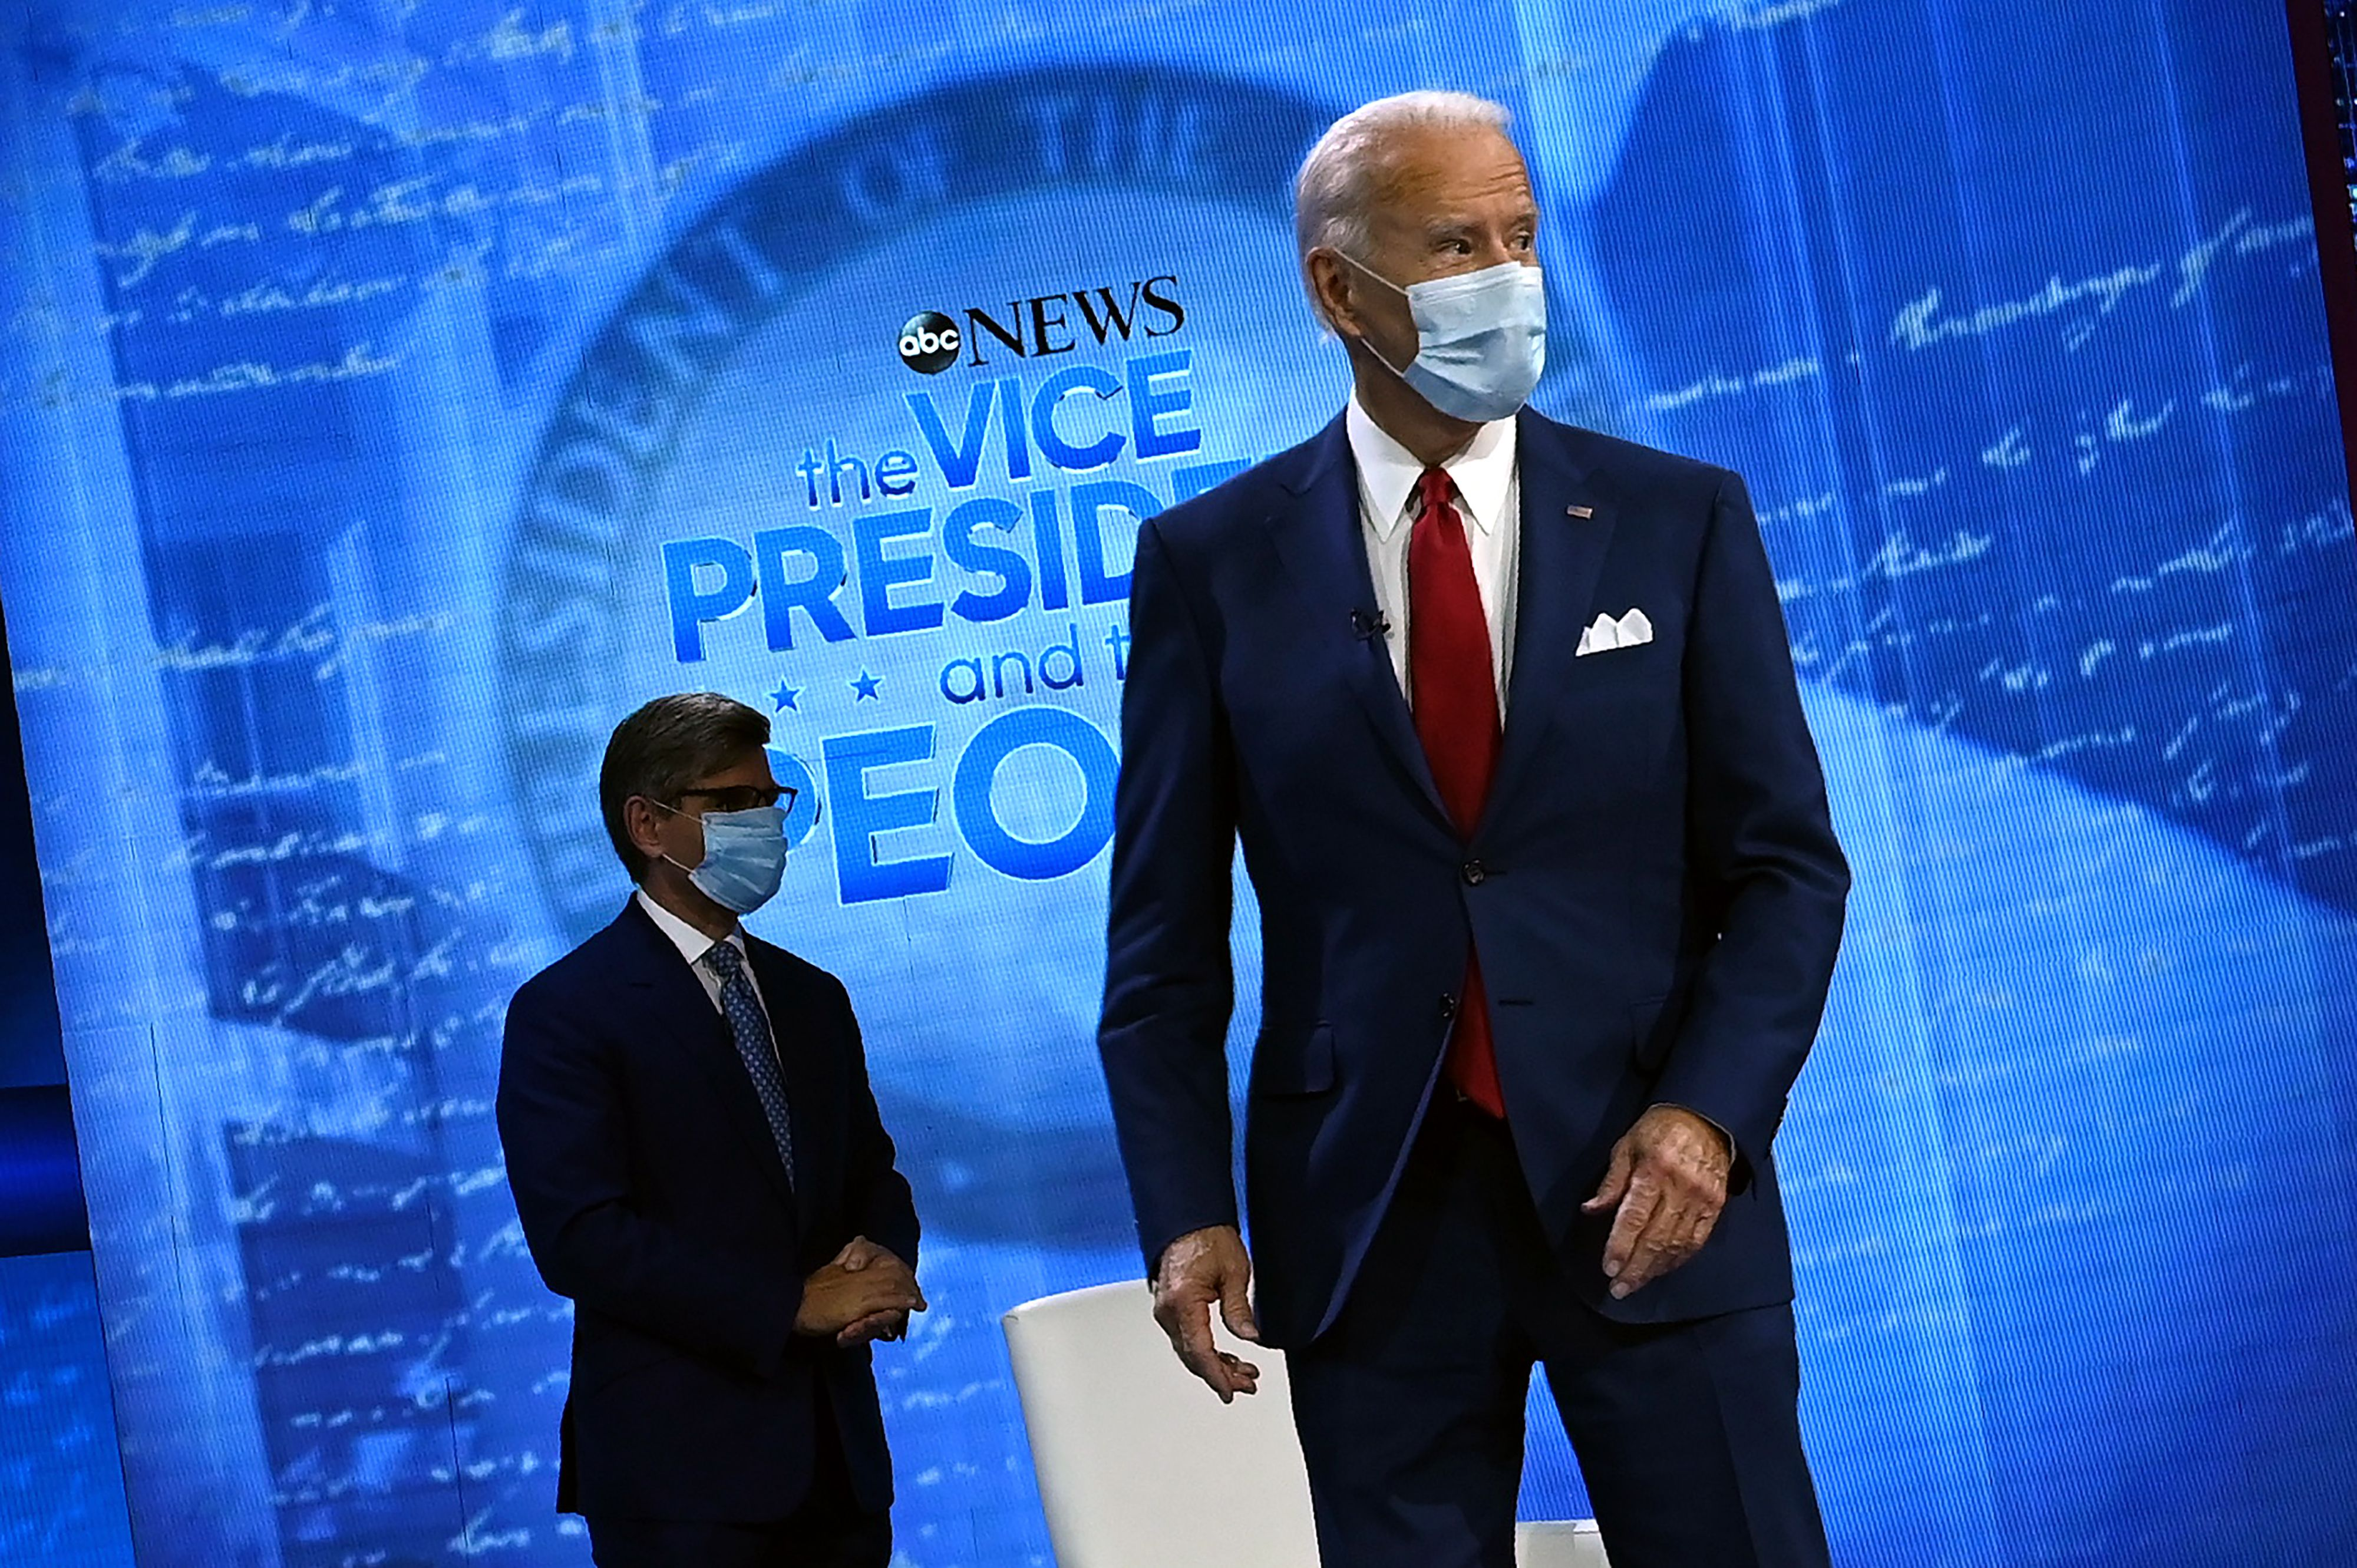 Joe Biden, right, and George Stephanopoulos